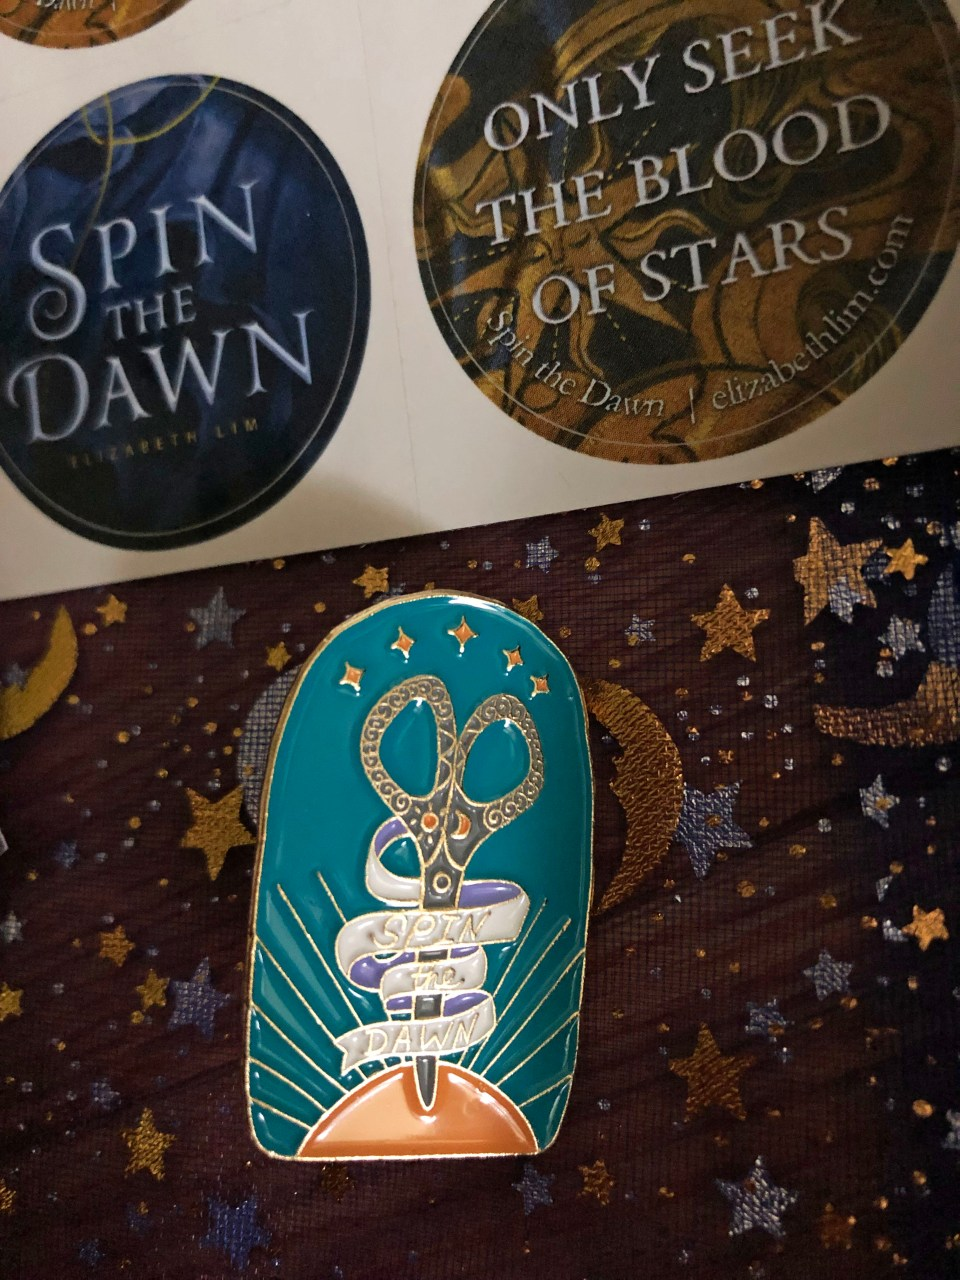 Spin the Dawn - Sip & Sew 18